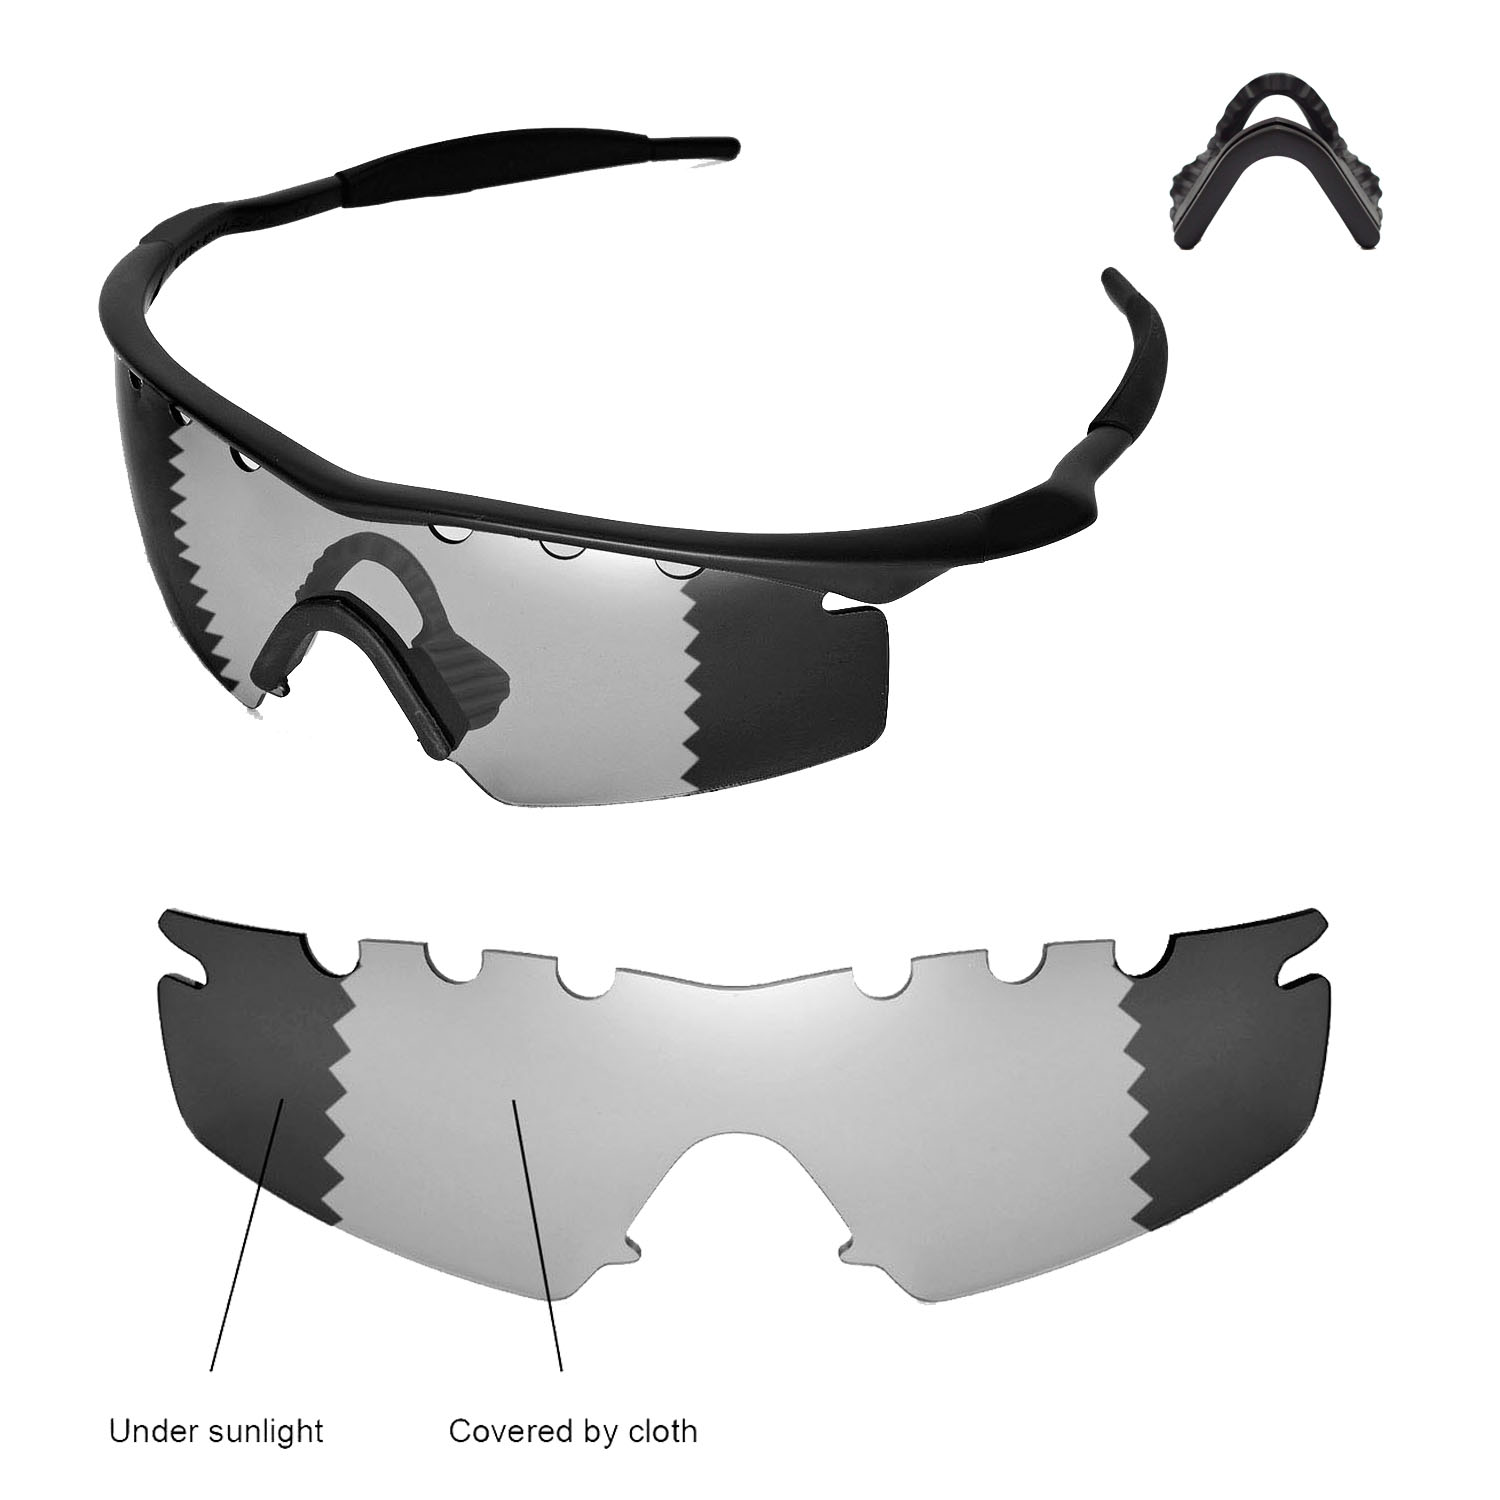 6a06bb73665 Details about WL Polarized Transition Vented Lenses + Black Nosepads for  Oakley M Frame Strike